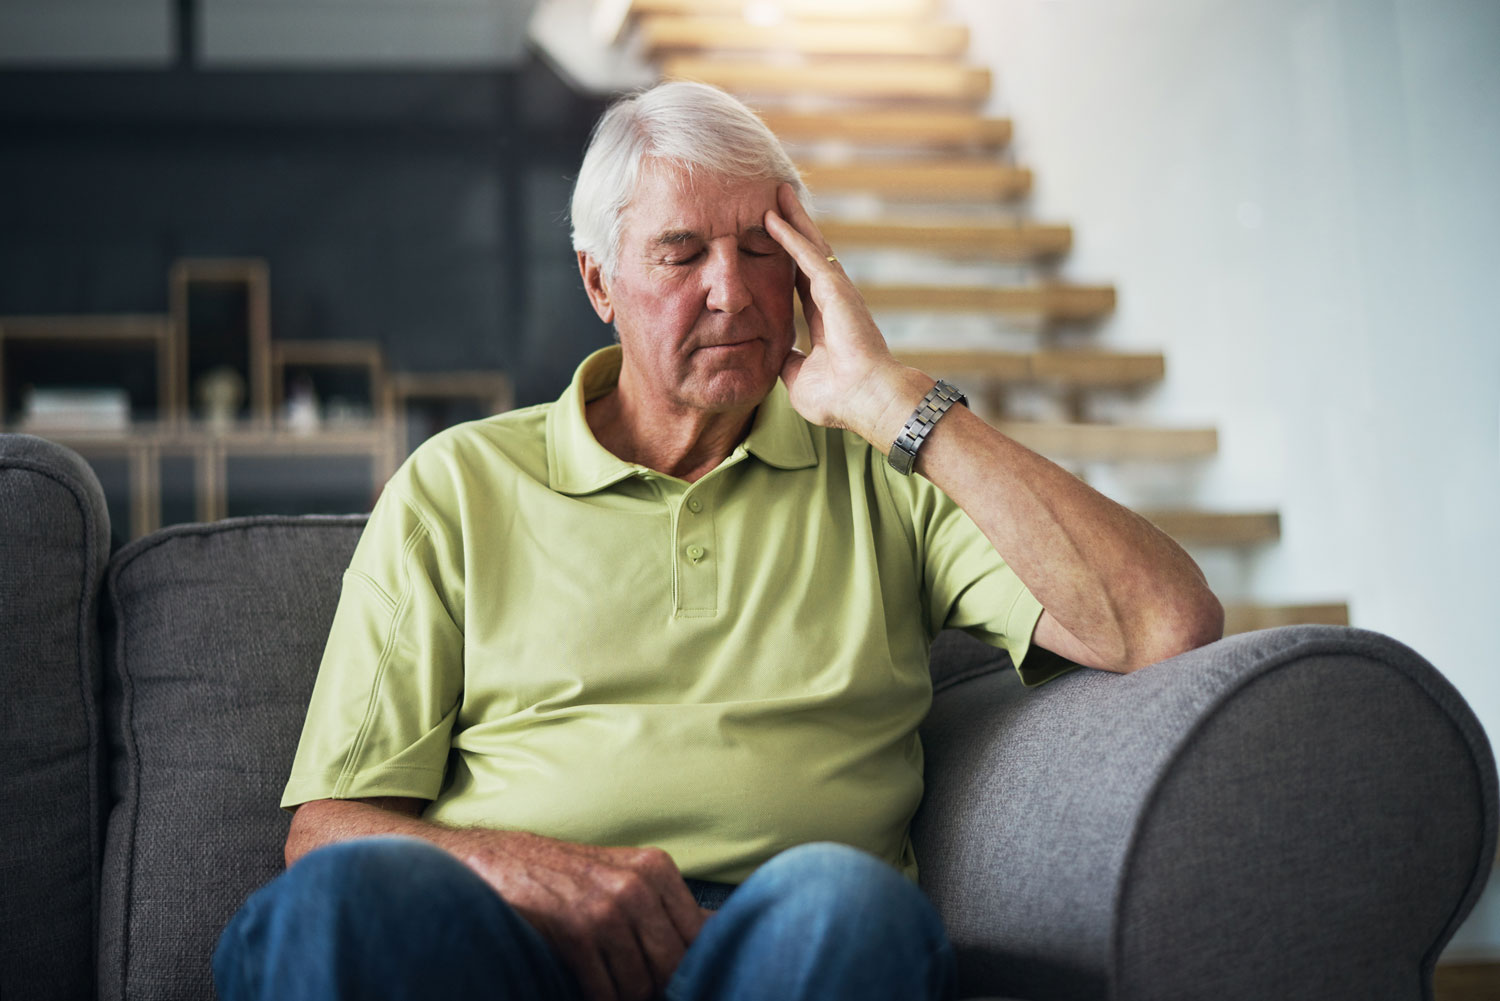 Seniors Living Alone with Cognitive Impairment Hit Hard by COVID-19 Pandemic